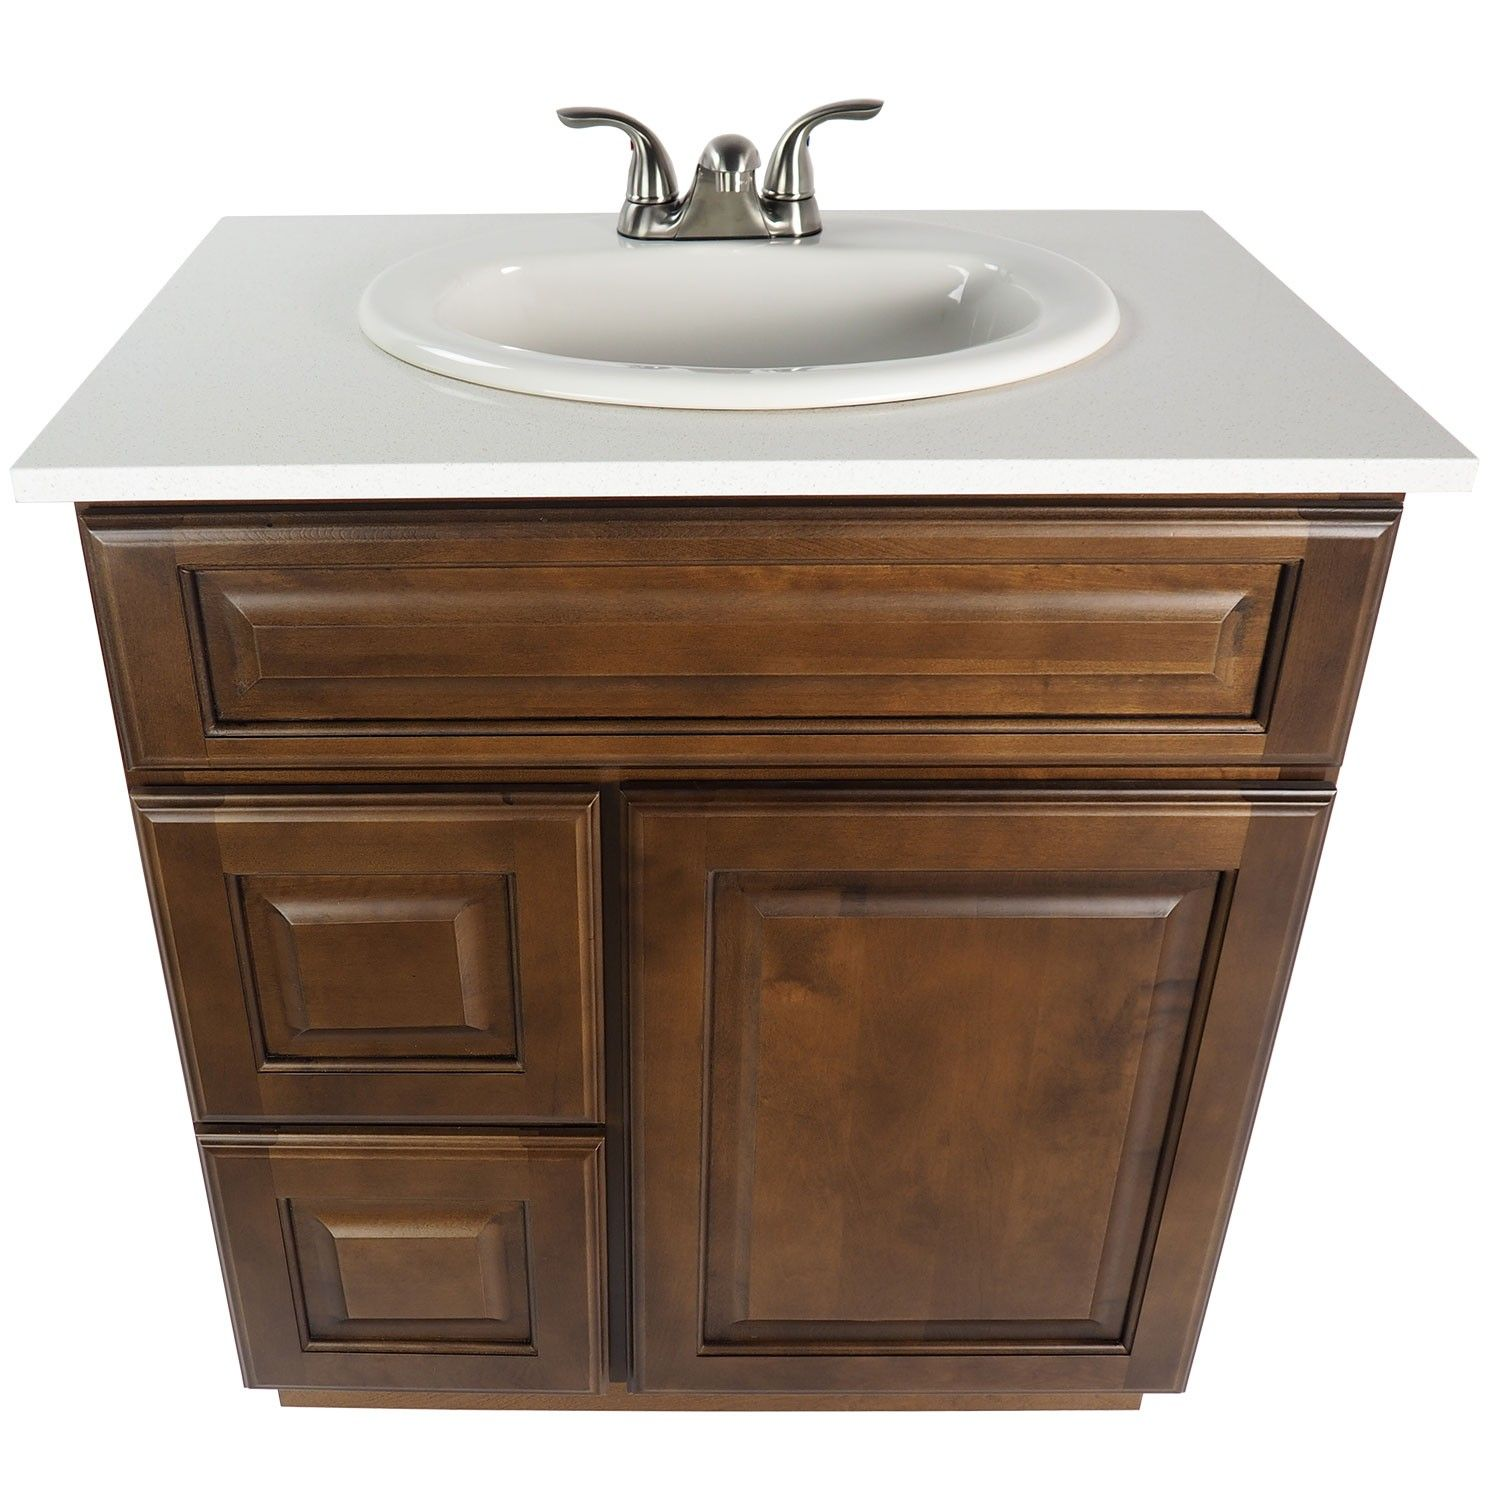 30 Inch Bathroom Vanity Single Sink Cabinet In Juniper Chestnut Dark Brown Wood With Soft Close Drawers 30 Inch Bathroom Vanity Bathroom Vanity Sink Cabinet